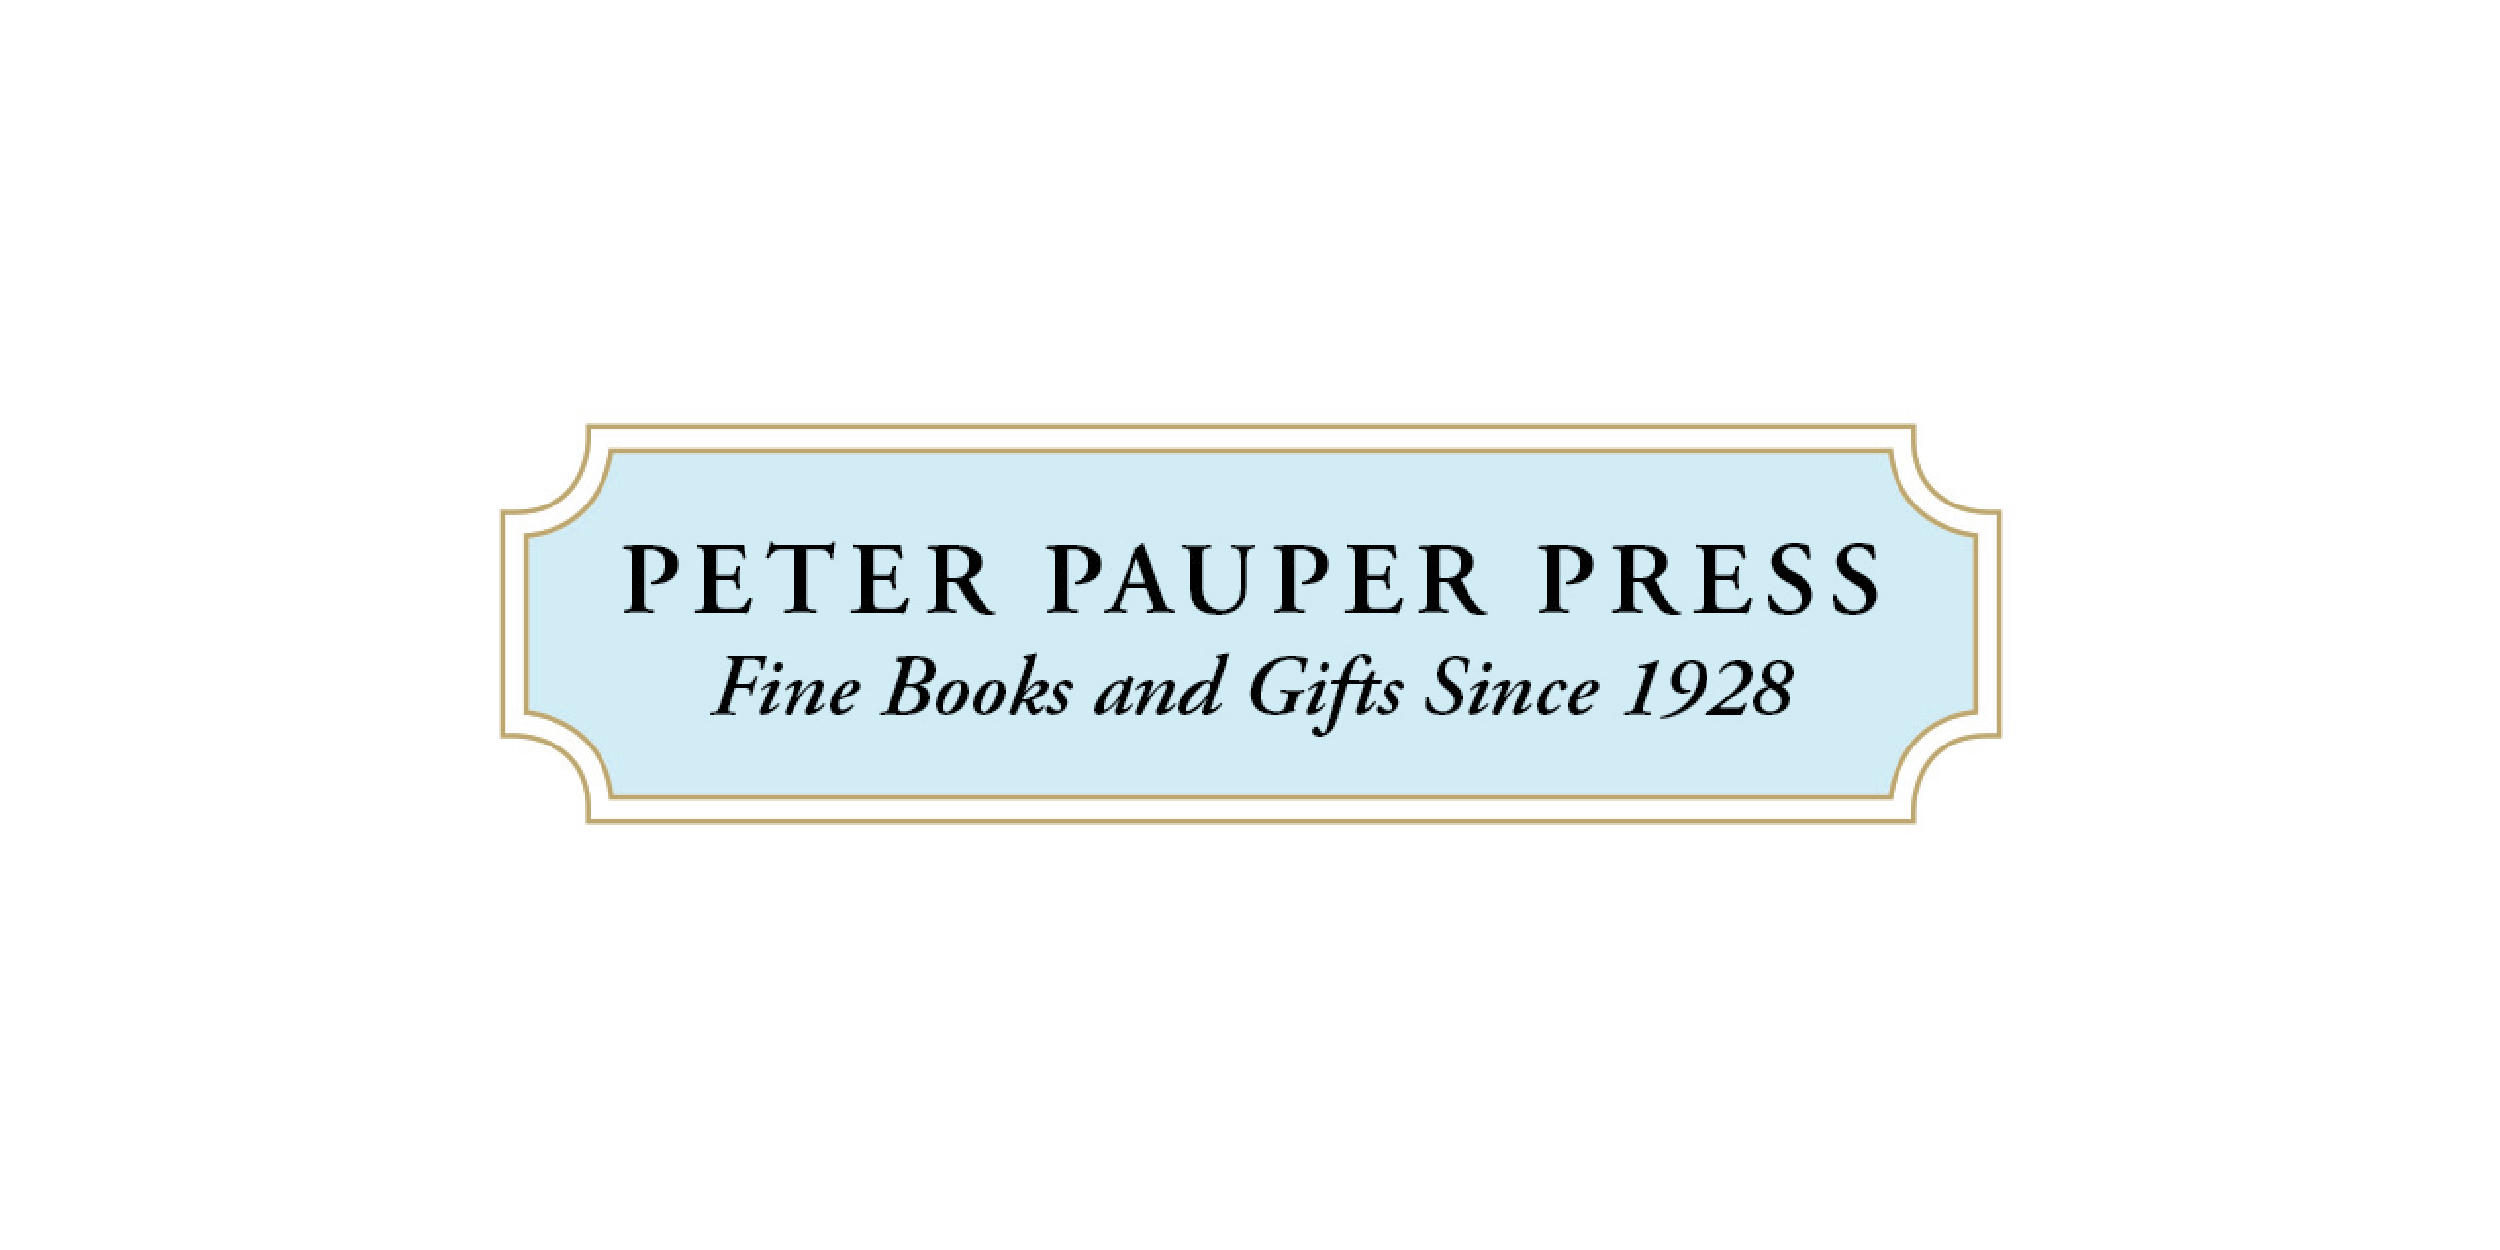 peter-pauper-press-logo-01.jpg